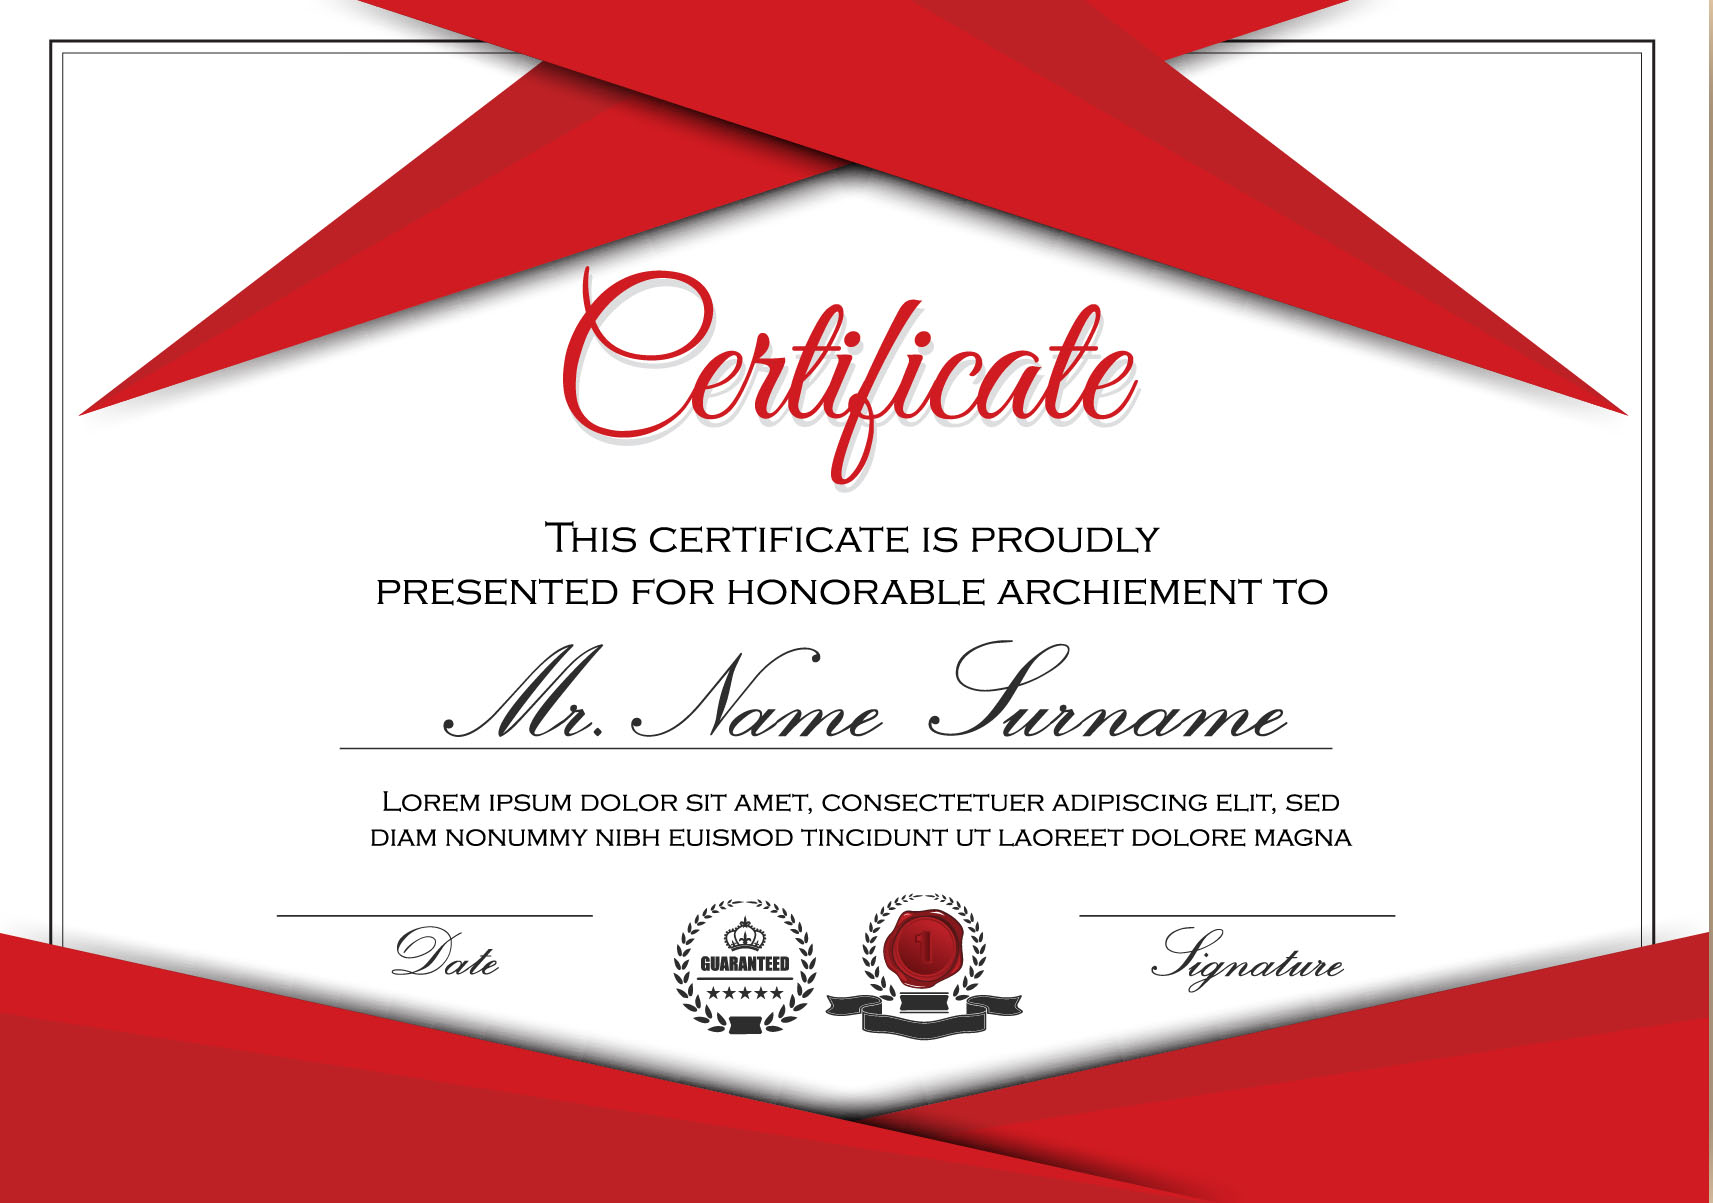 Certificate vector page 3 of 19 for free download red styles certificate template vector 04 xflitez Gallery